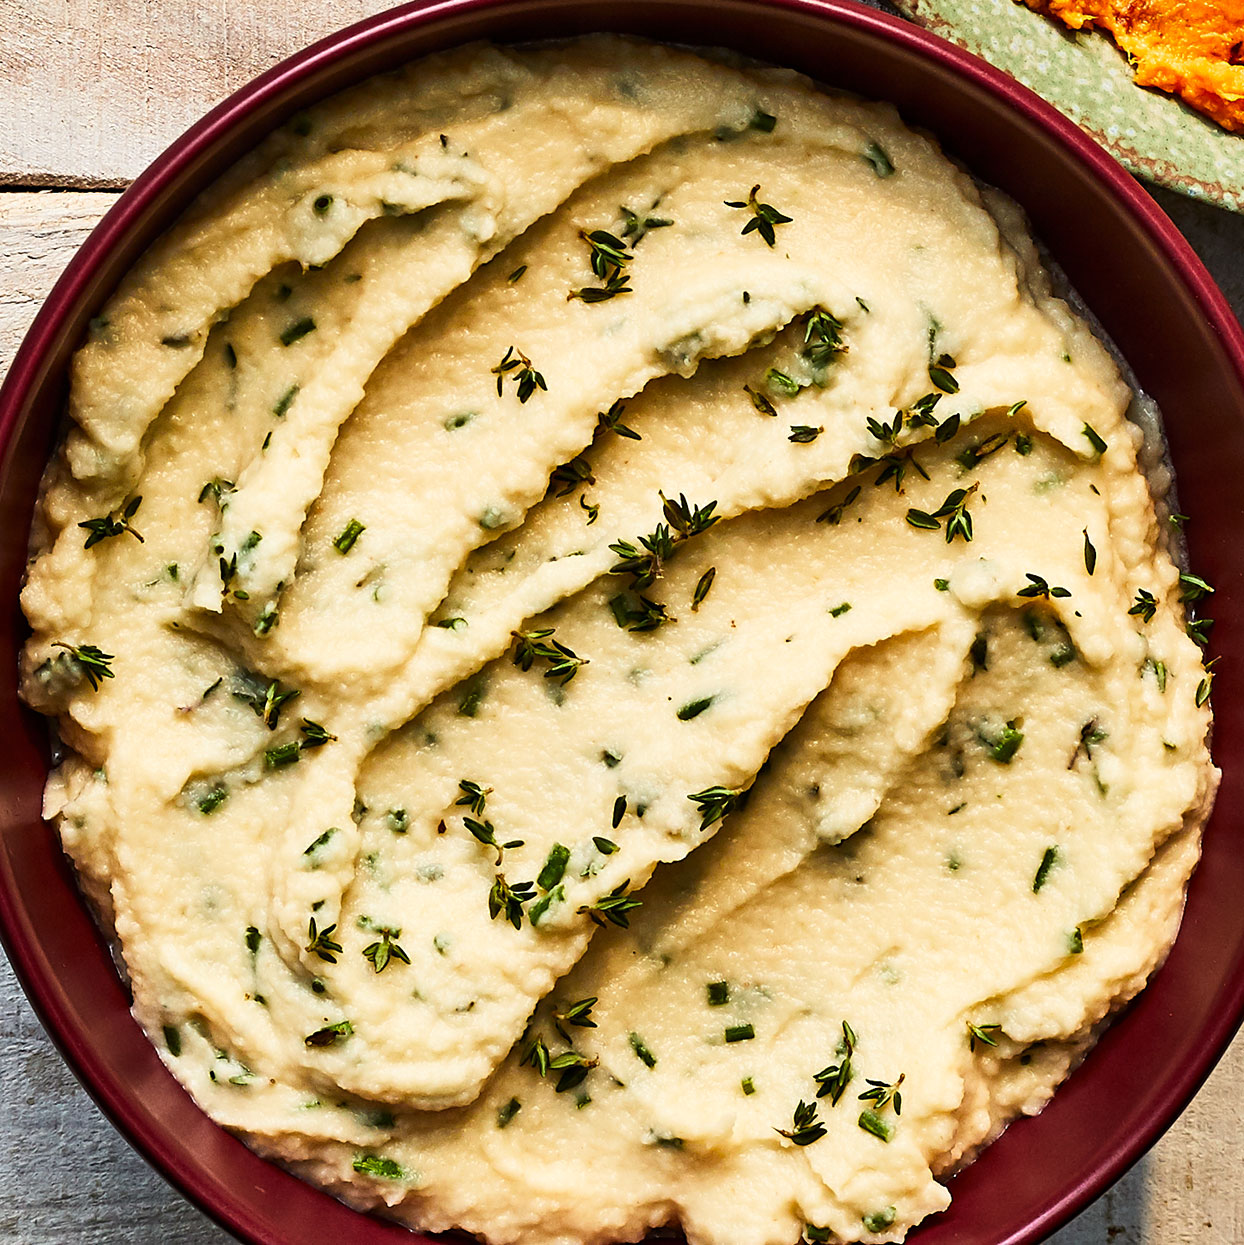 Mashed Celeriac with Herbs